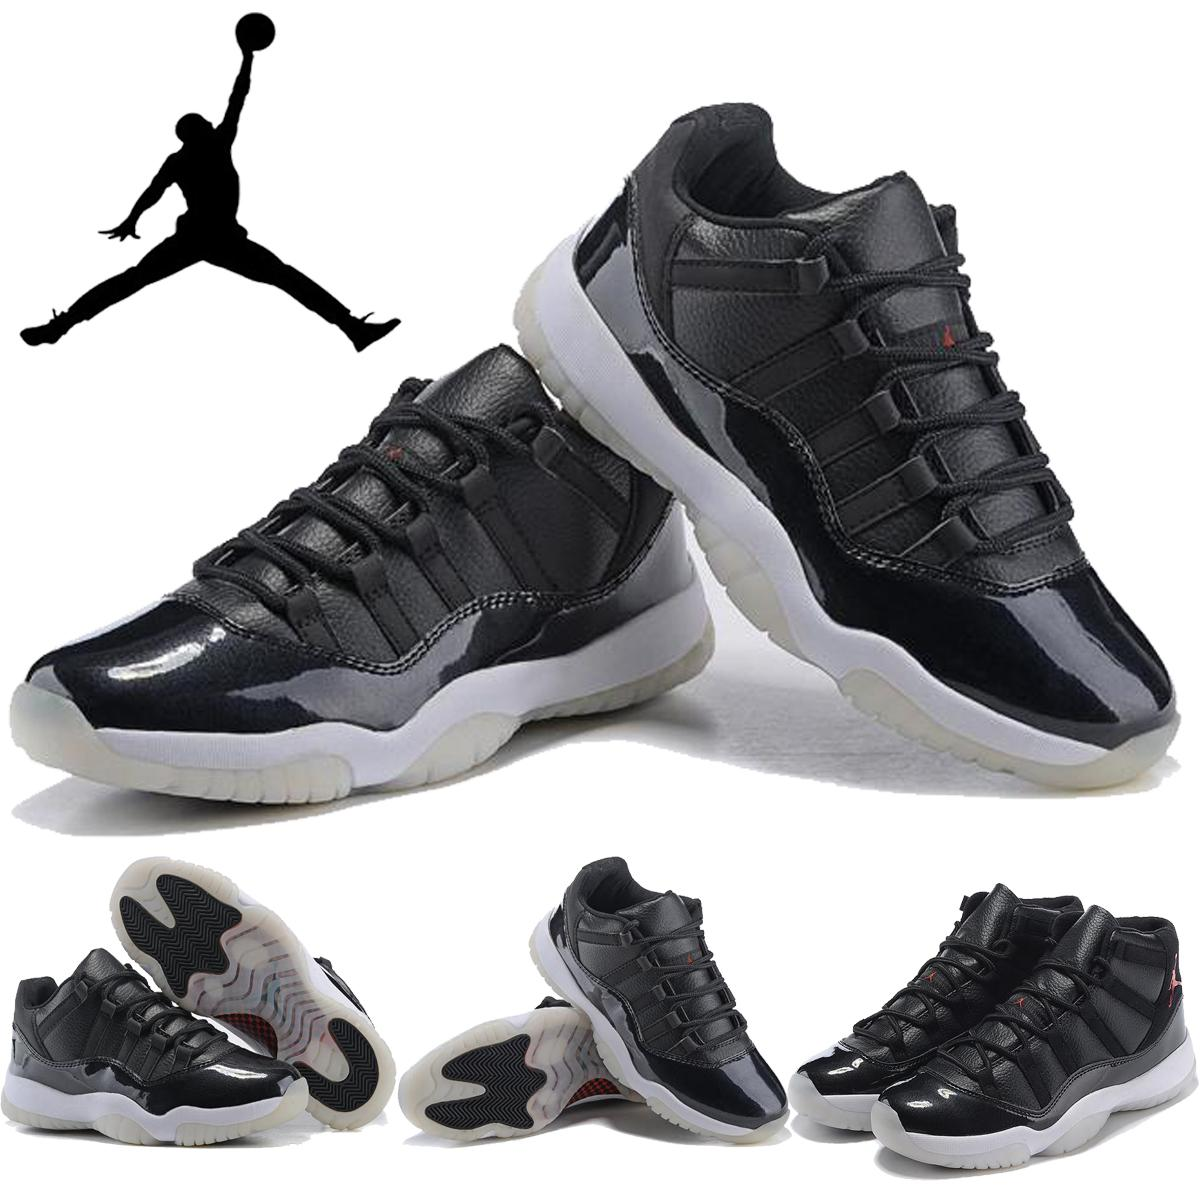 Acheter Nike Air Jordan 11 Red Mens Basketball Shoes 72 10 High Et Low Noir  Blanc, Jordan Retro Xi Aj11 Men Shoe Sneakers Taille 8 13 De $100.51 Du ...